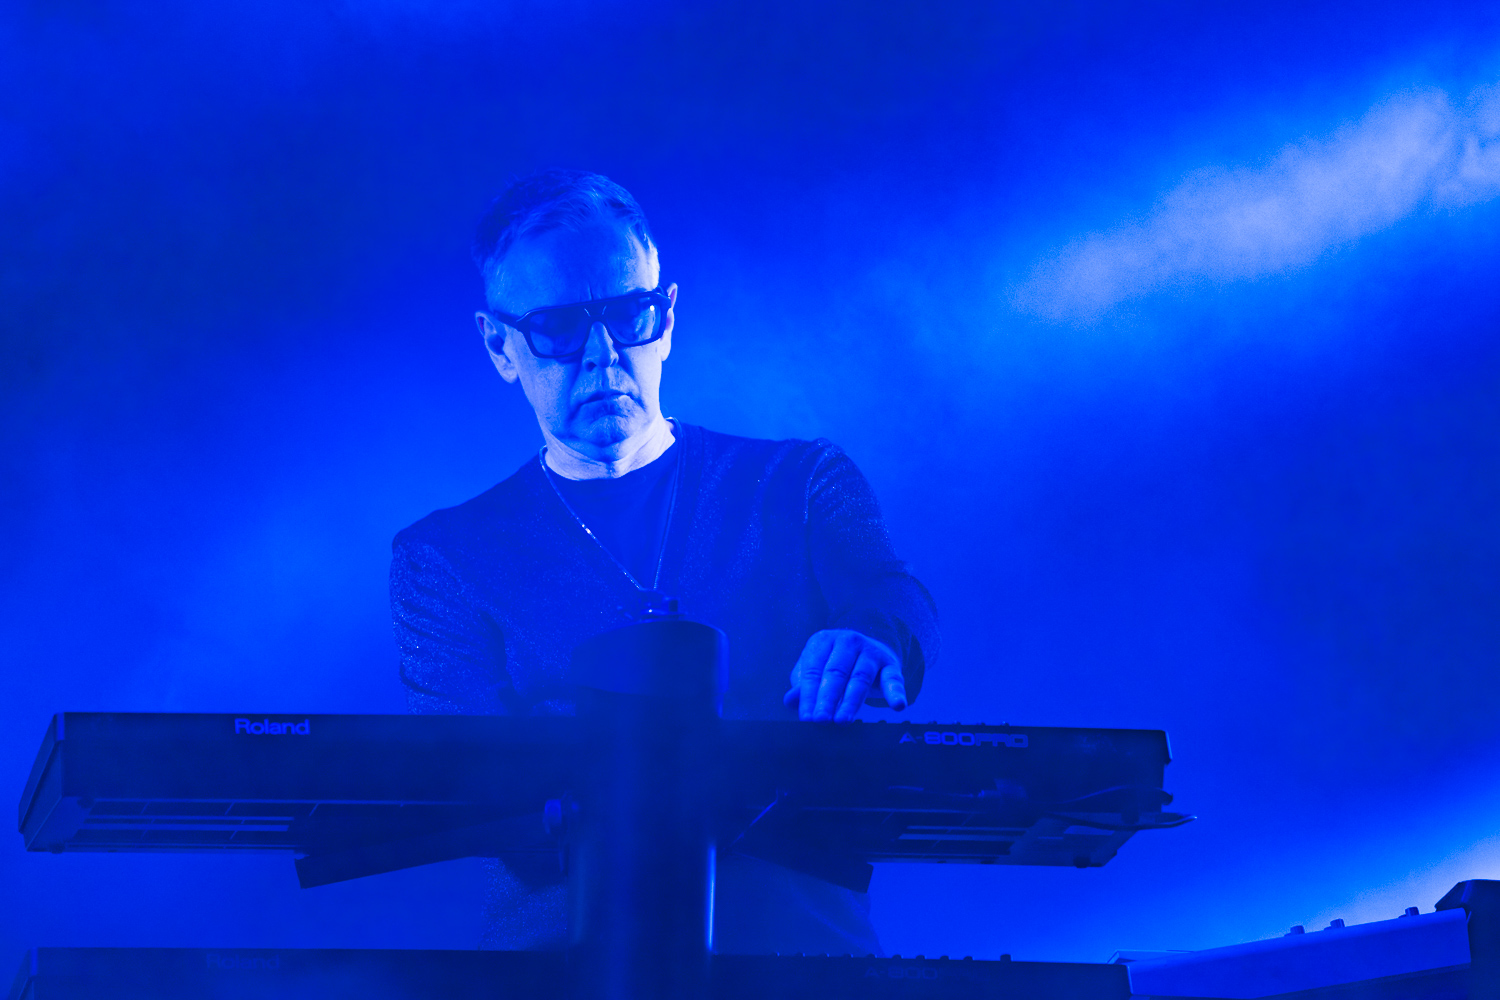 Andy Fletcher playing keys onstage for Depeche Mode. Photo: Lmsorenson.net